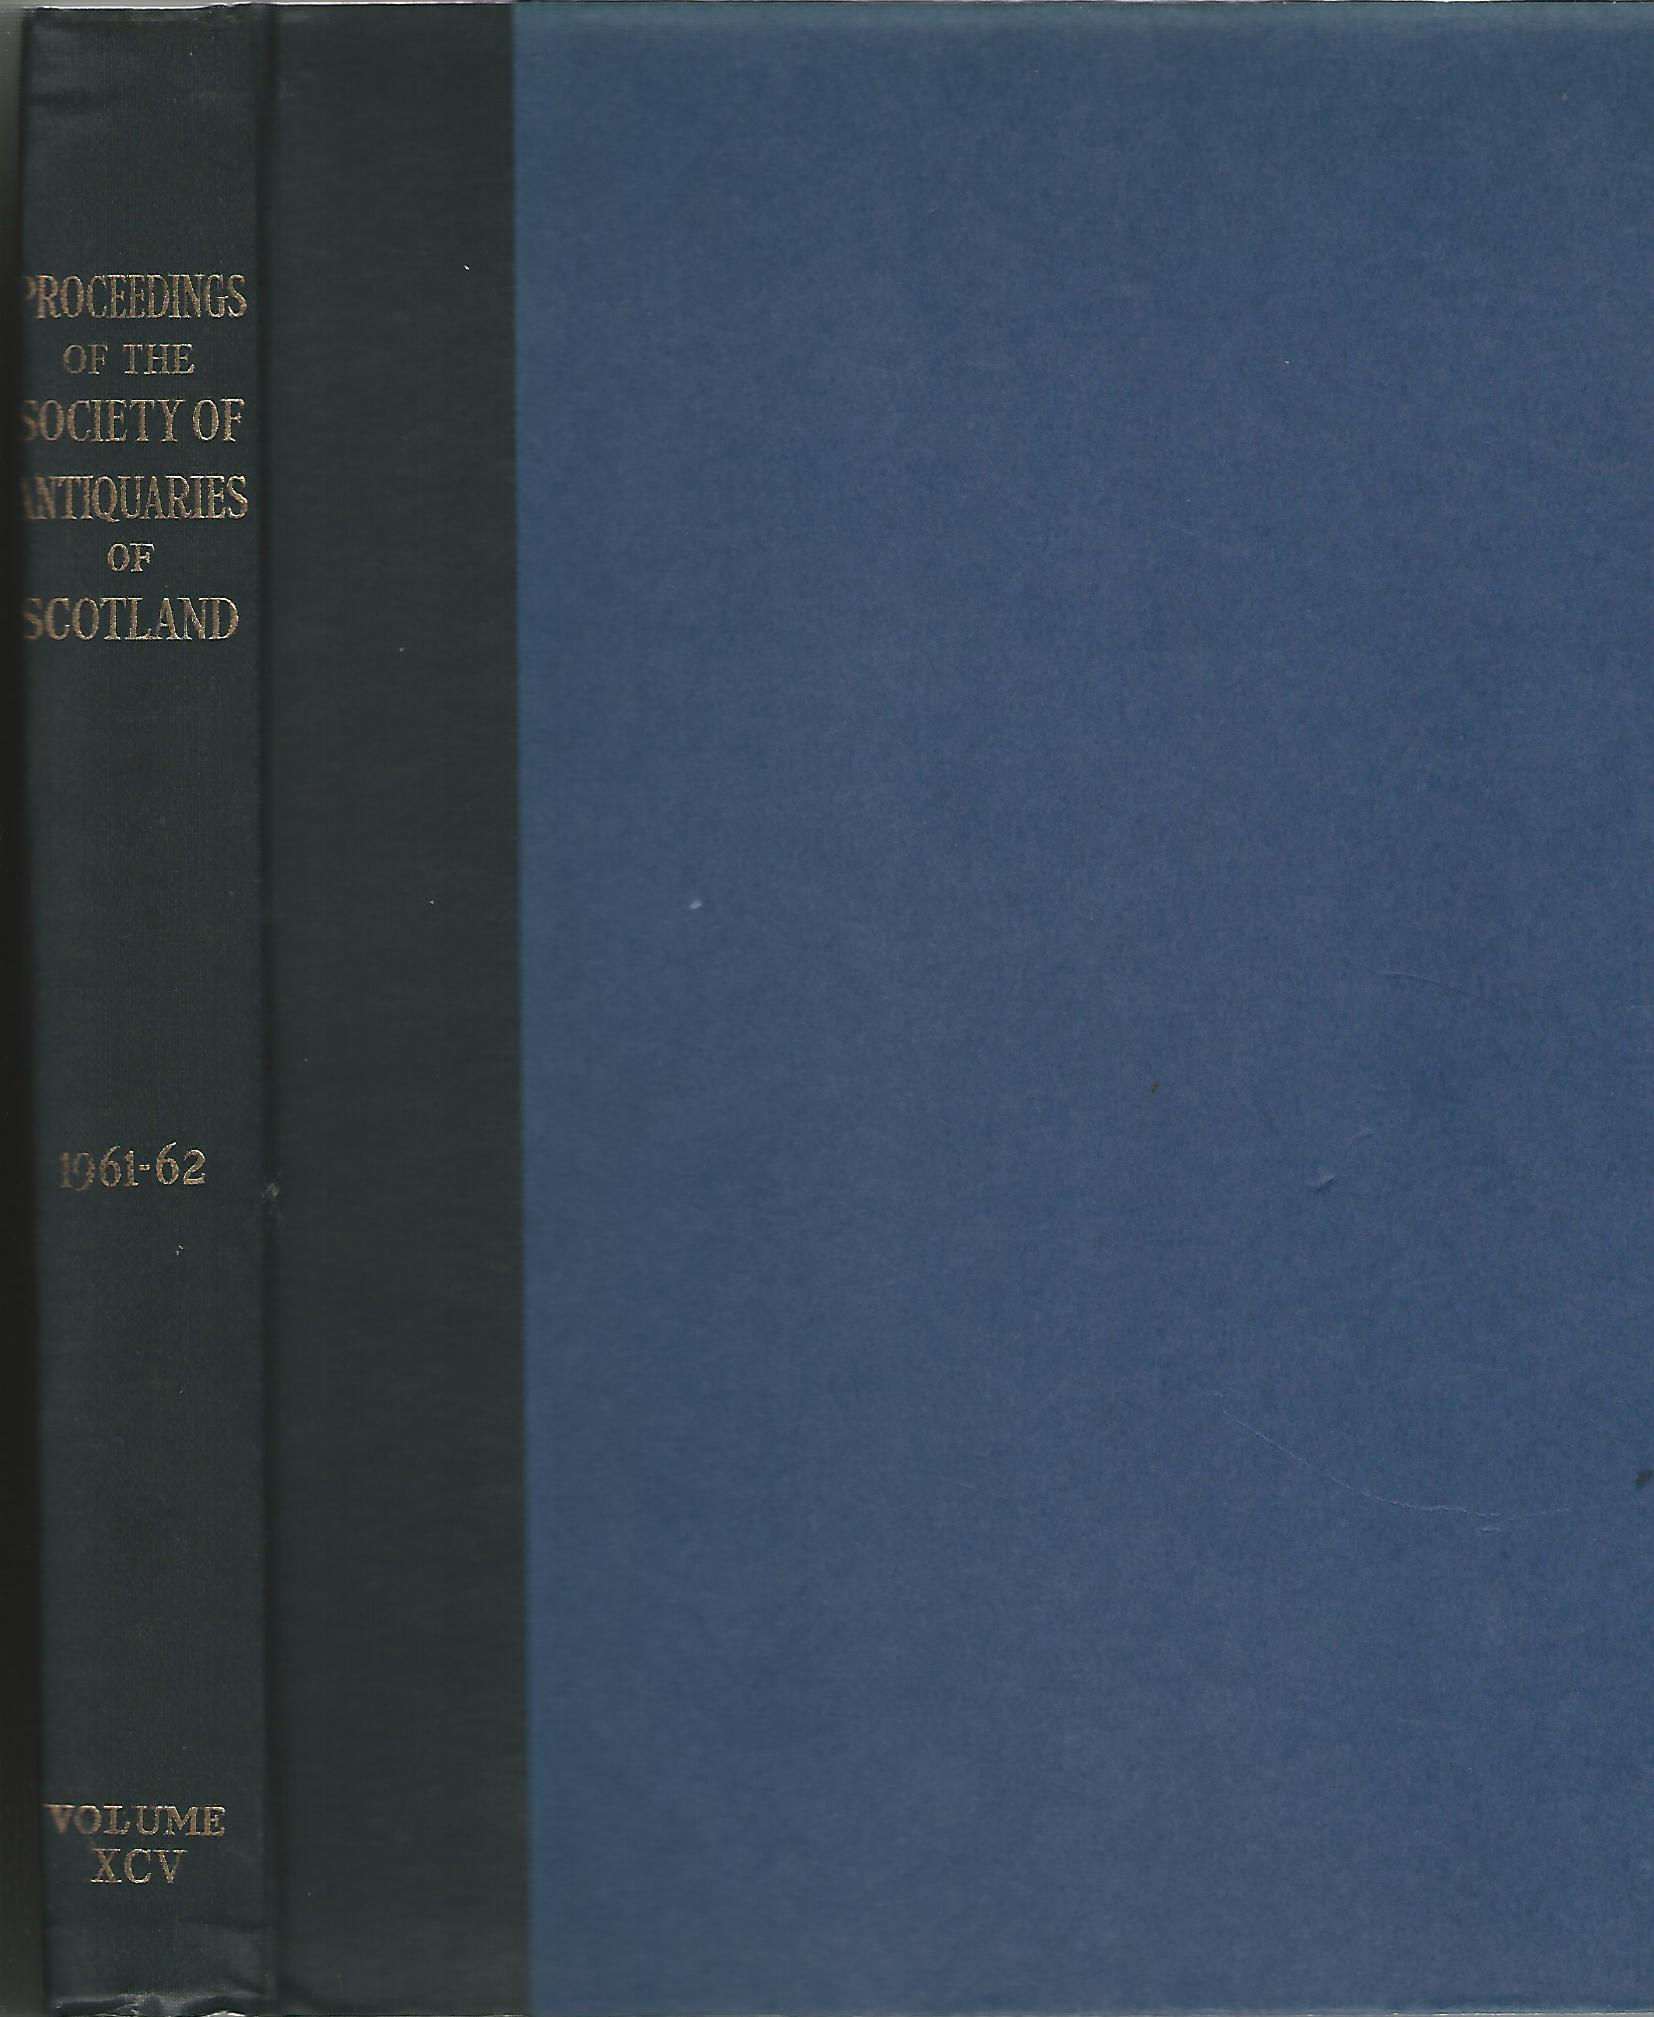 Image for Proceedings of The Society of Antiquaries of Scotland Volume XCV 1961-62.